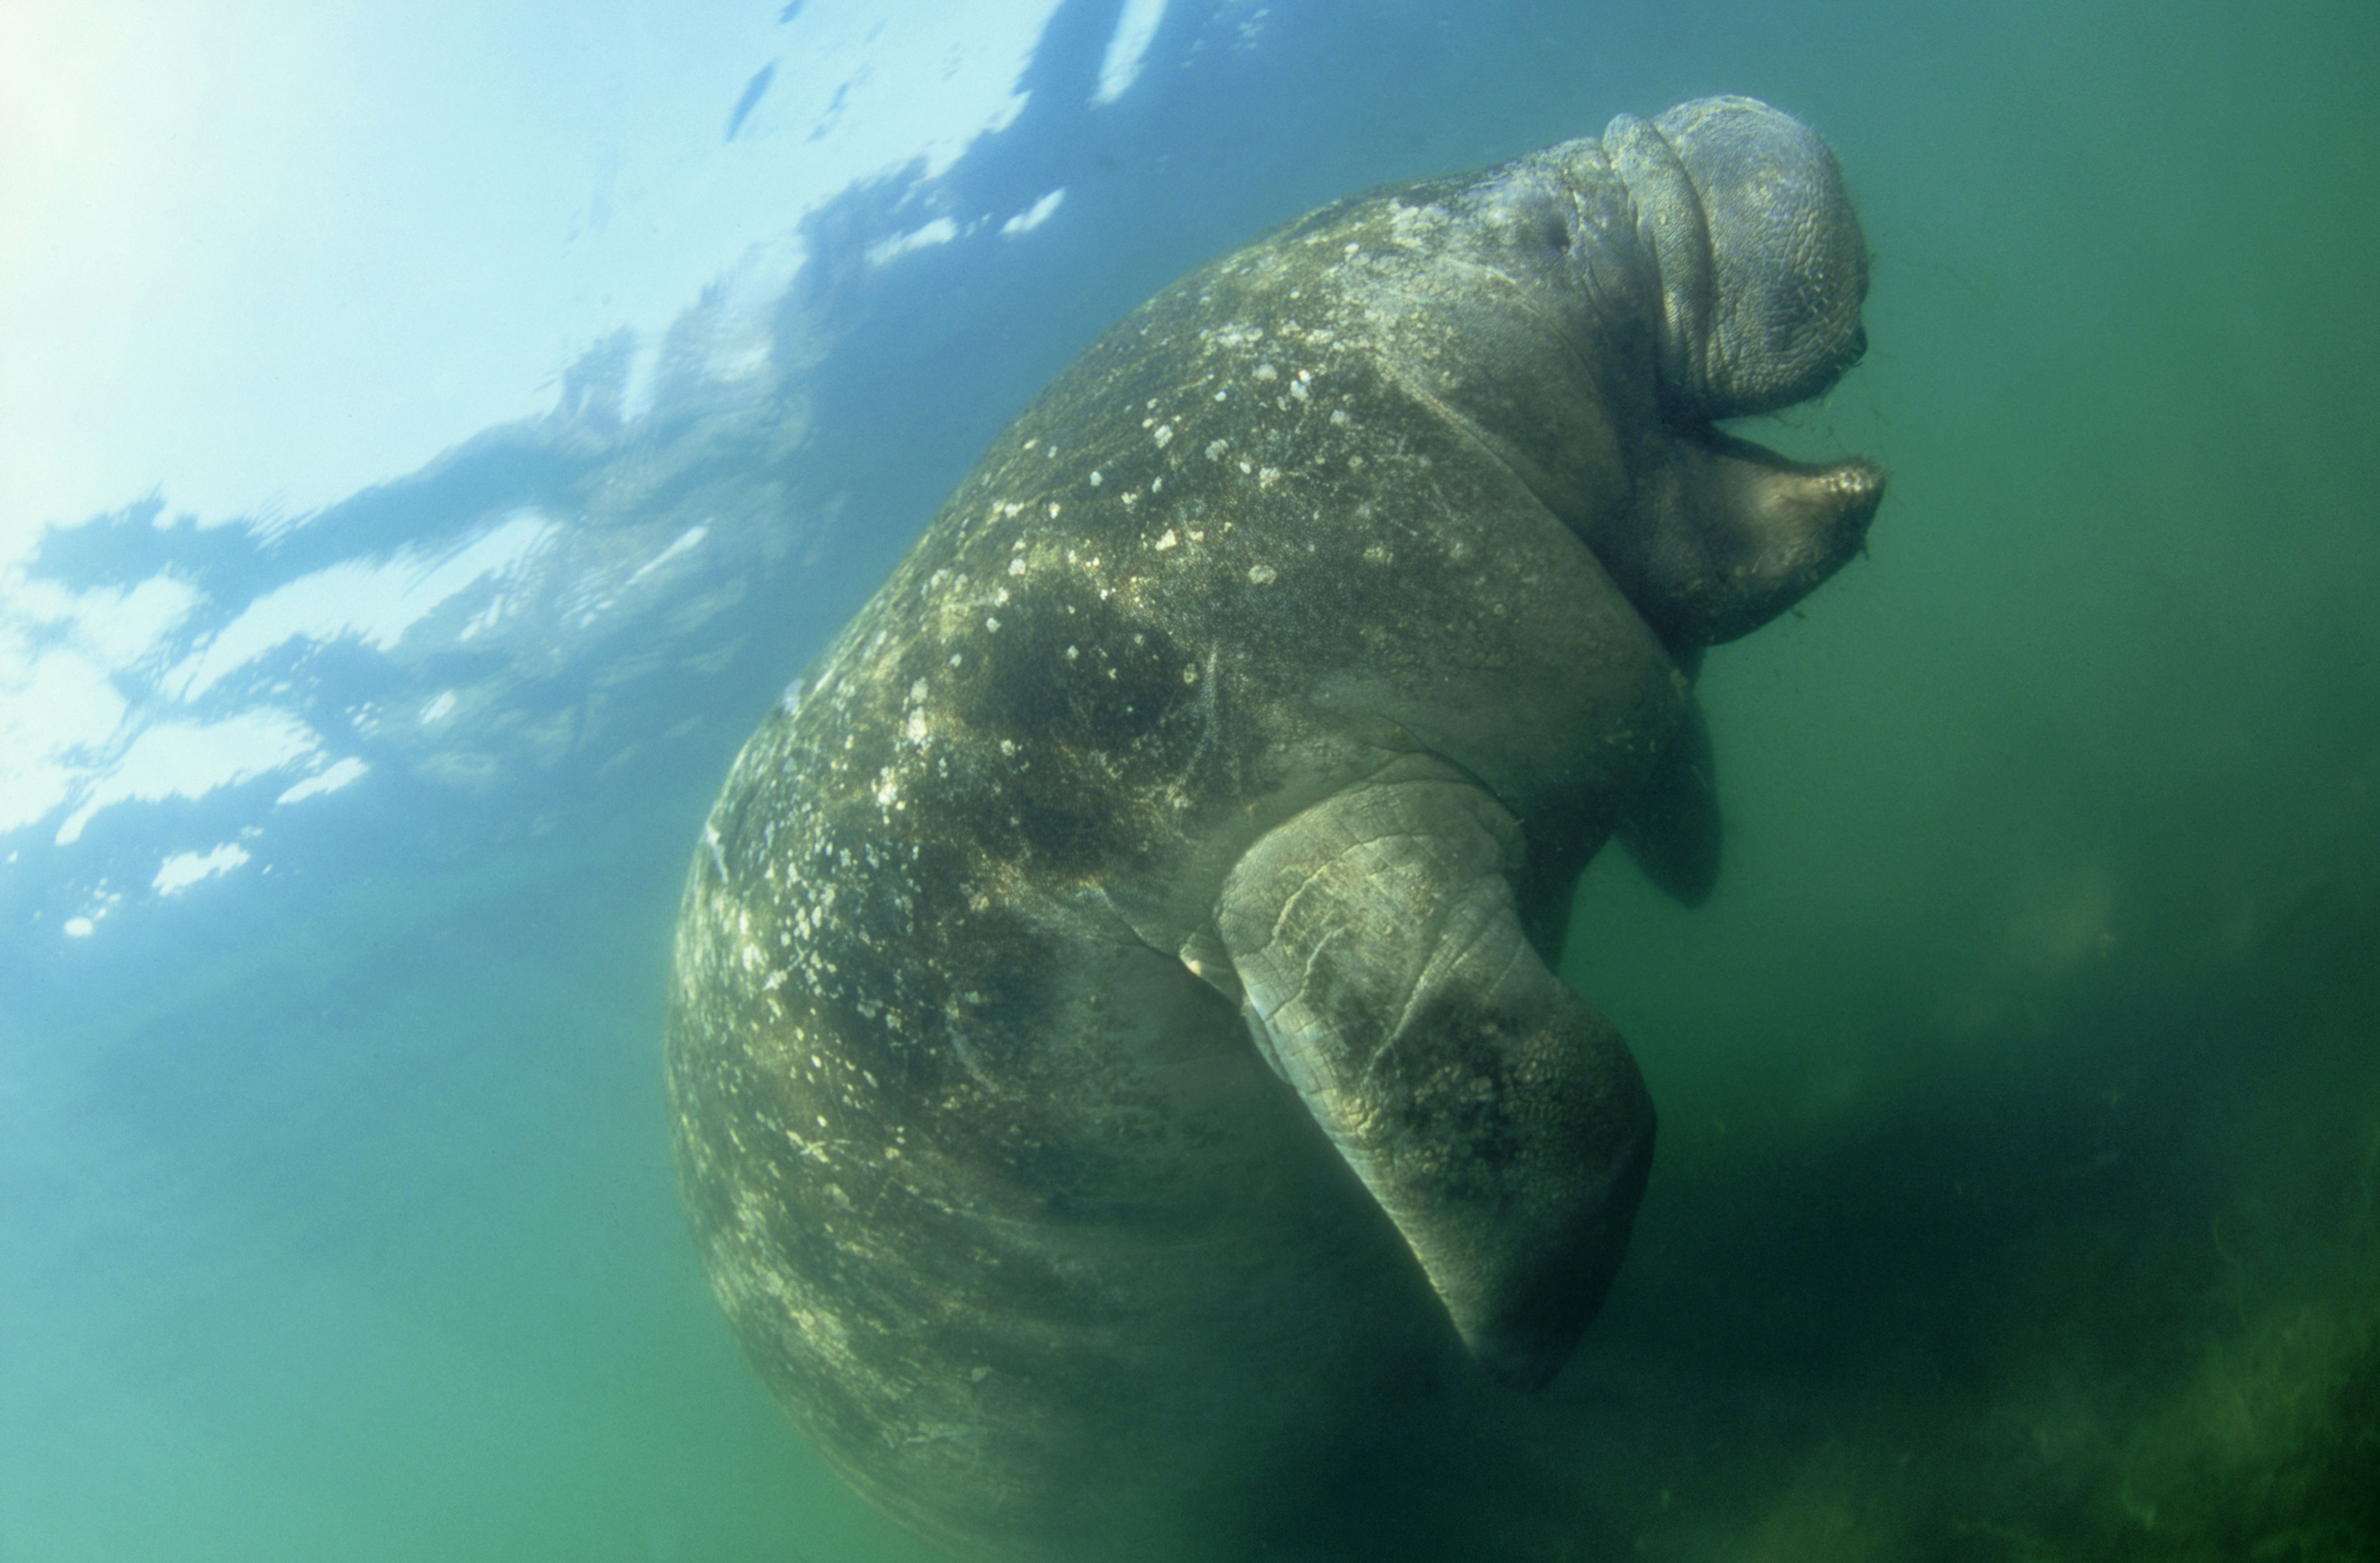 """But a real manatee would never do that! These <a href=""""http://www.savethemanatee.org/manfcts.htm"""">gentle giants</a> mostly ju"""